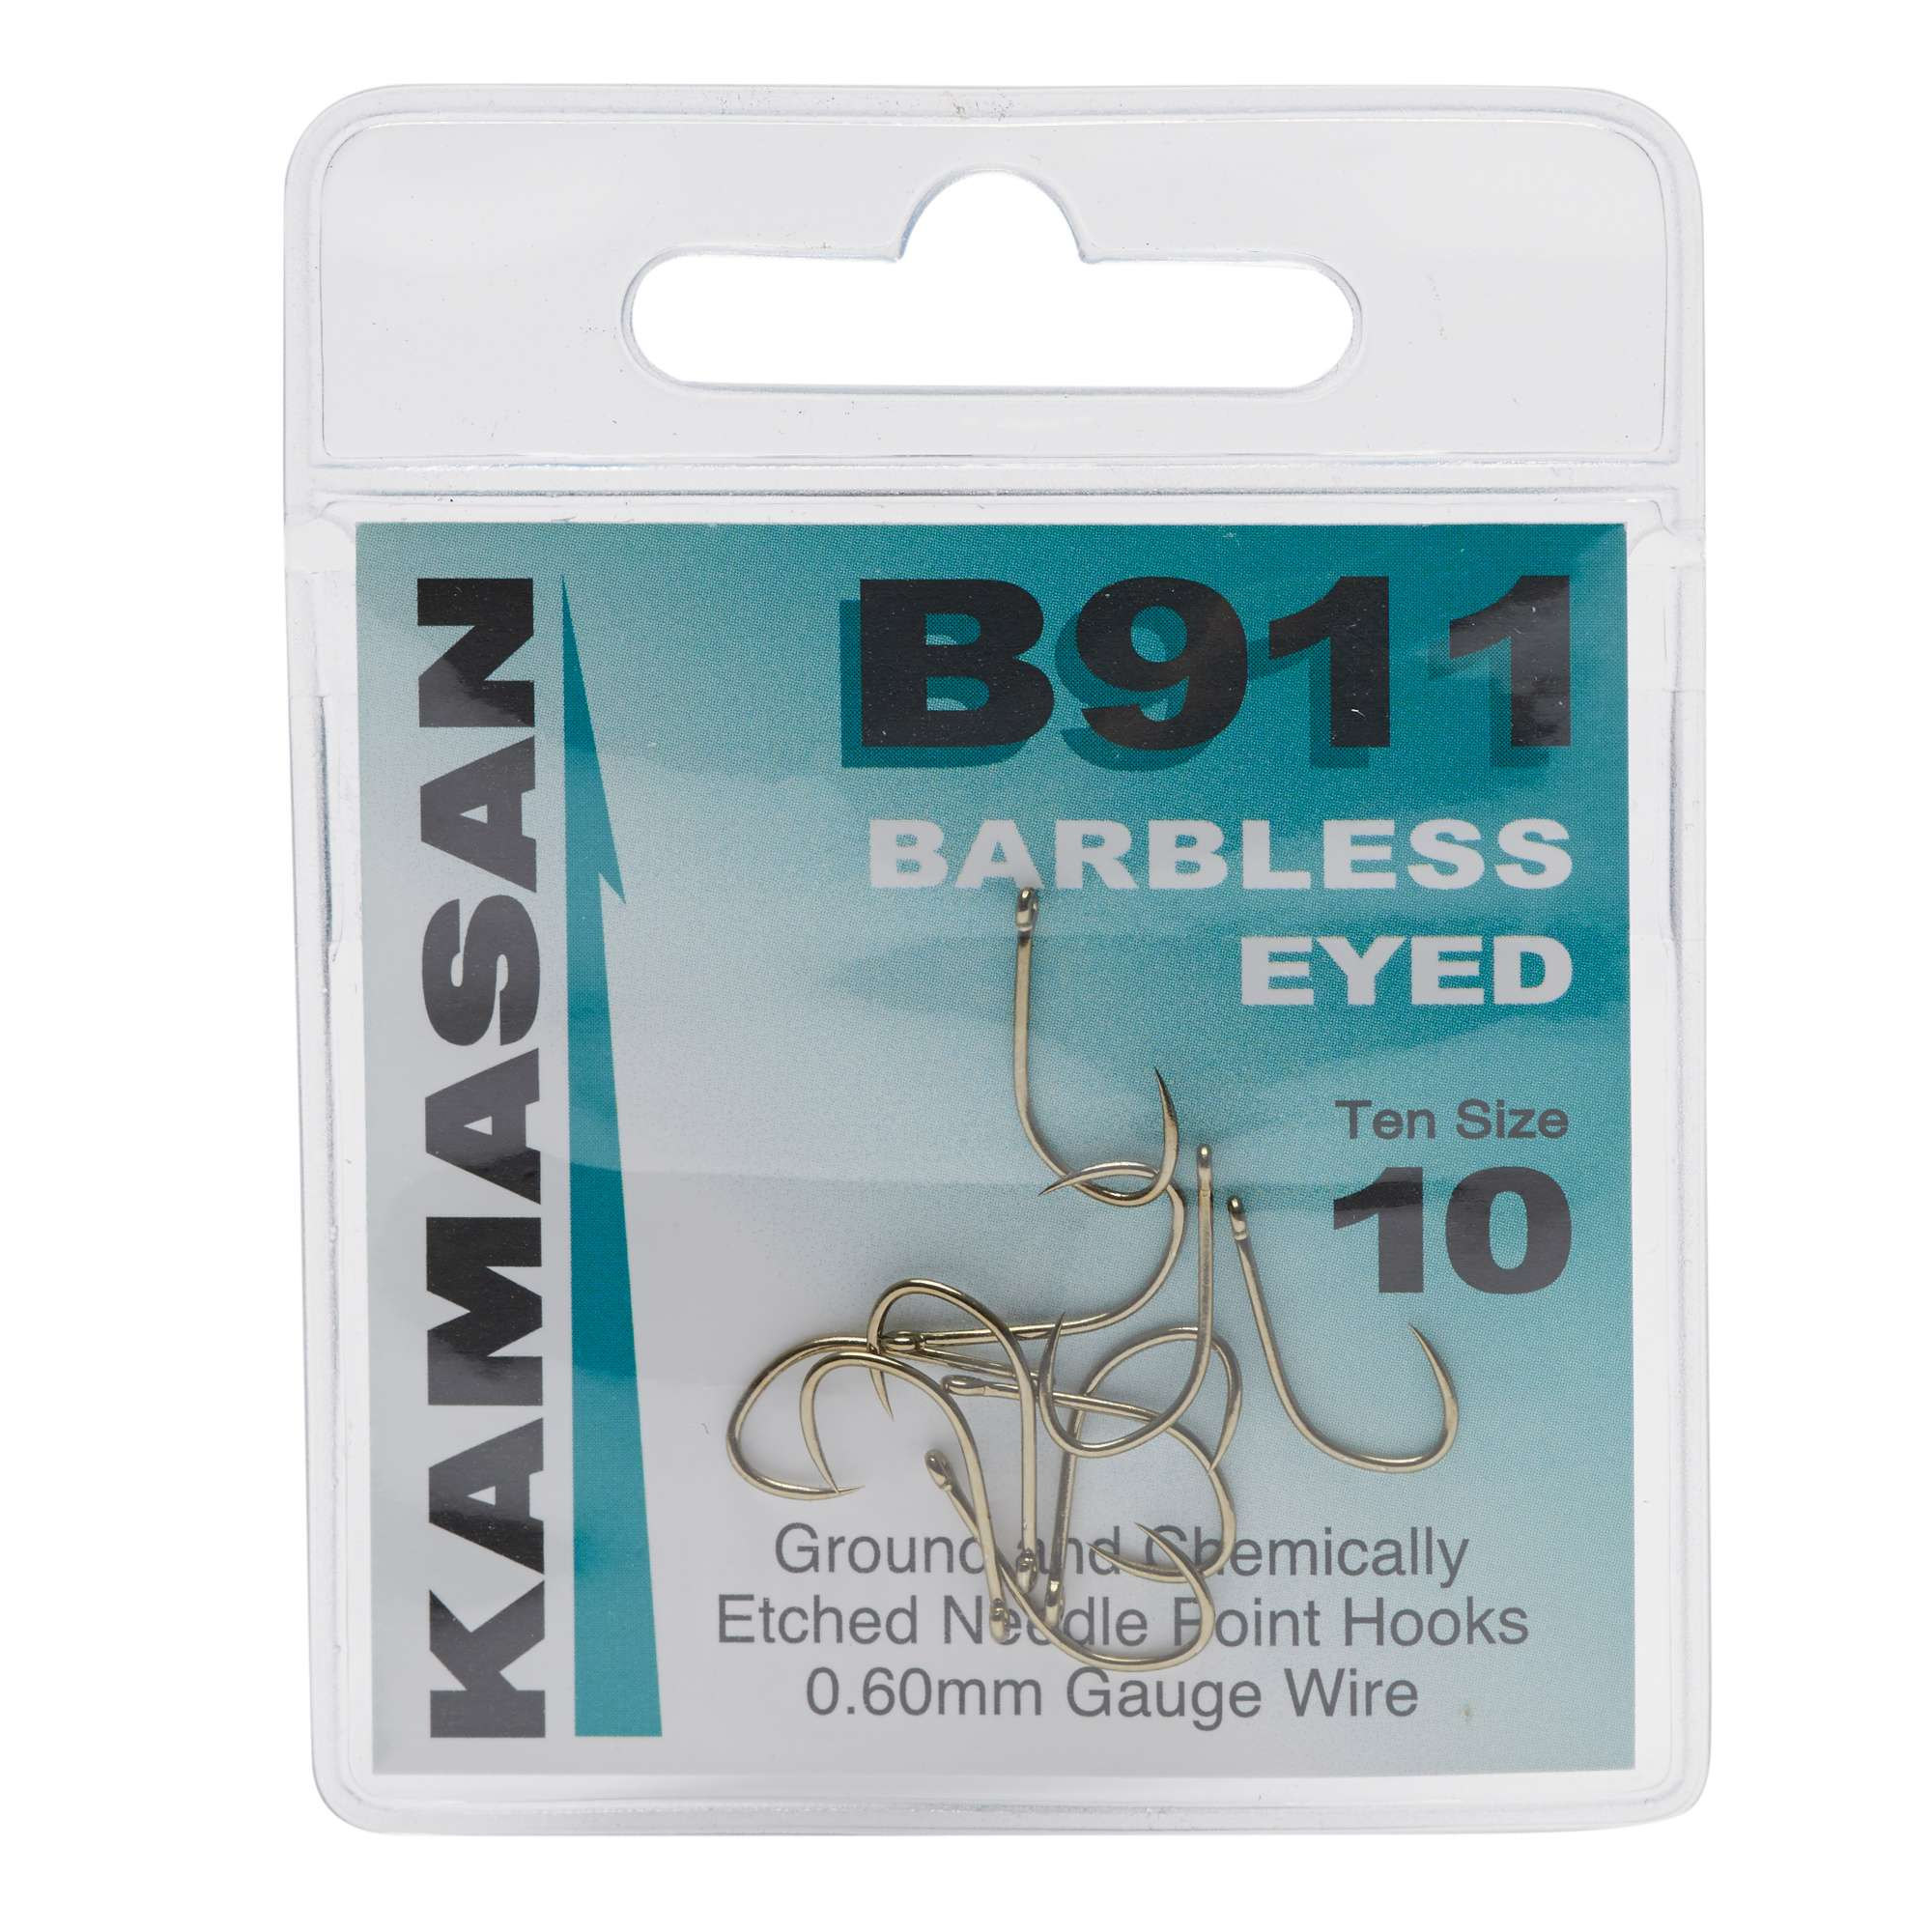 KAMASAN B911 Extra Strong Eyed Fishing Hooks - Size 10